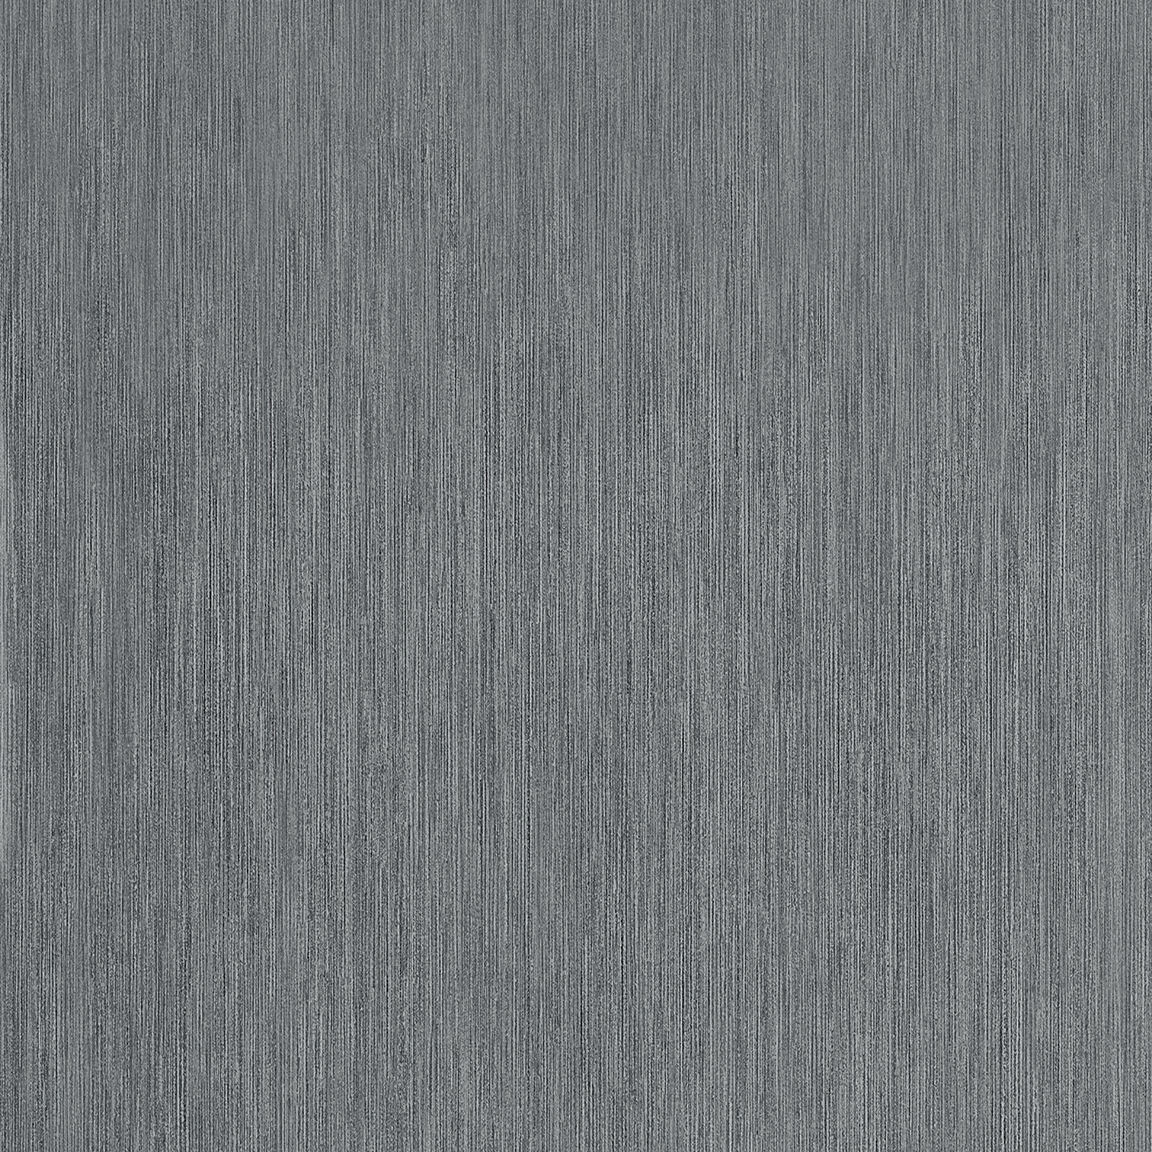 Sterling Gray tile